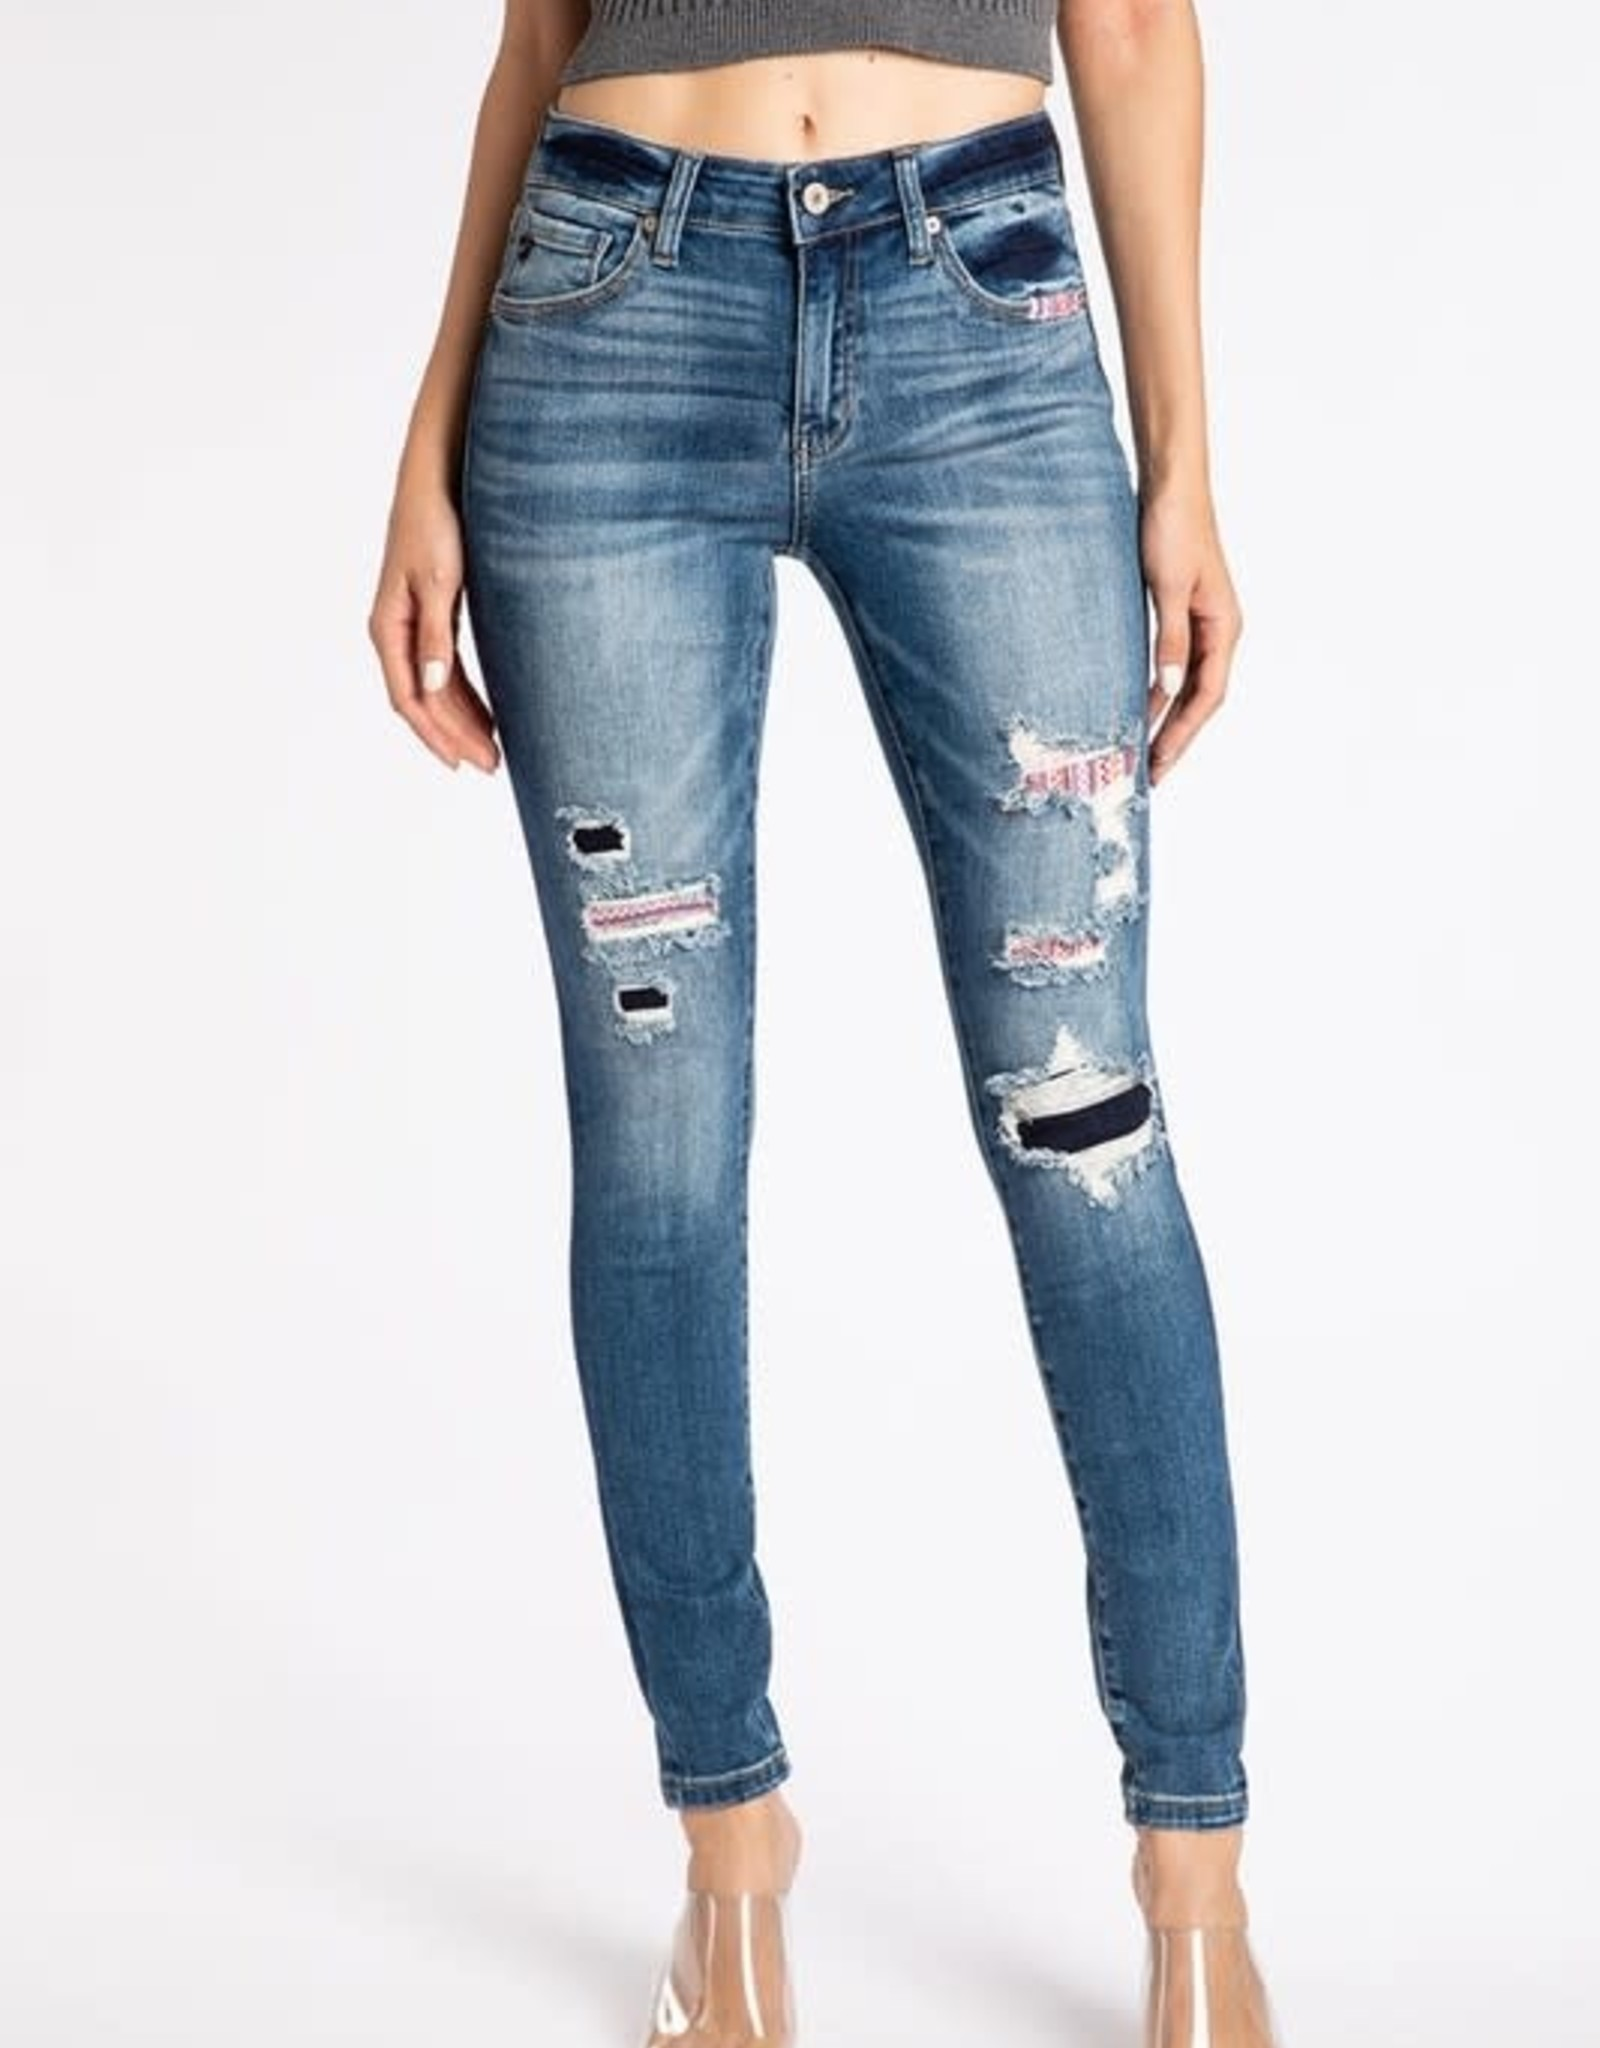 Patched KanCan Jeans